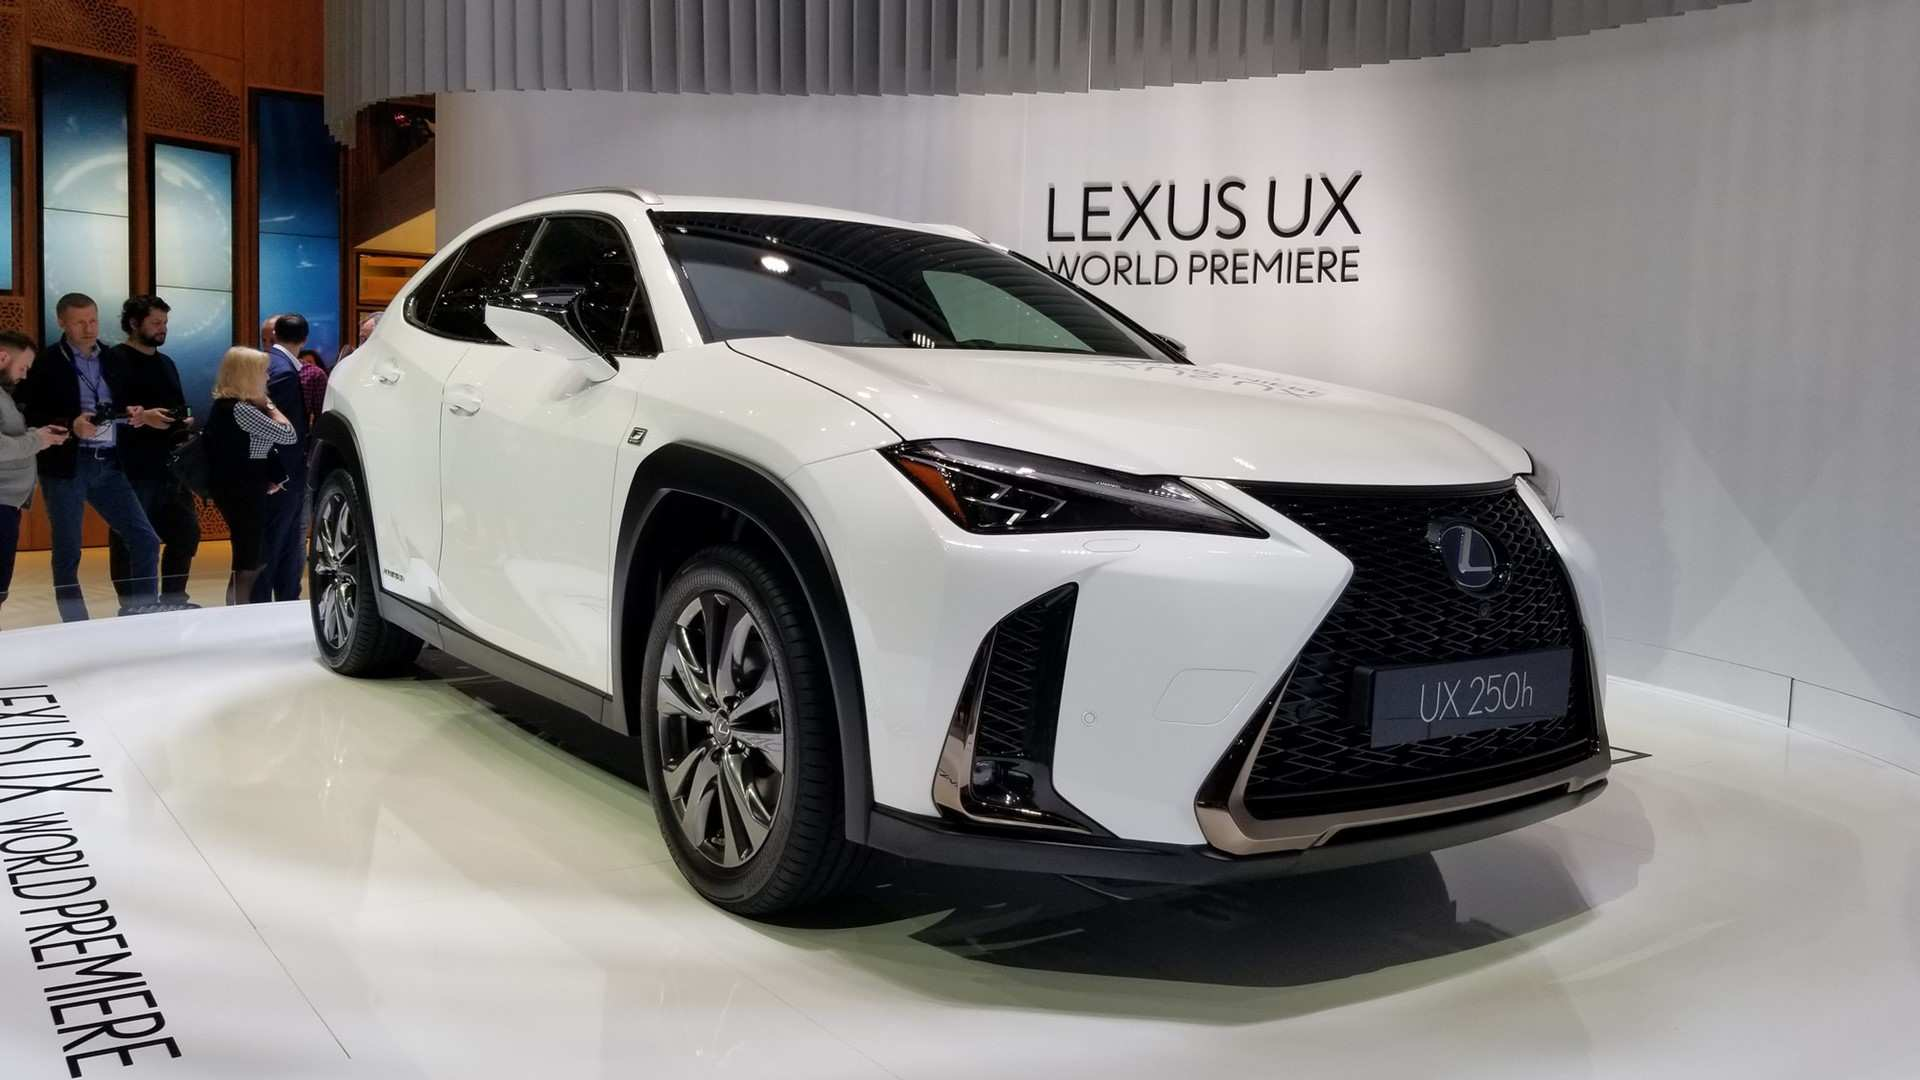 47 Gallery of 2019 Lexus Ux Price Canada Configurations for 2019 Lexus Ux Price Canada